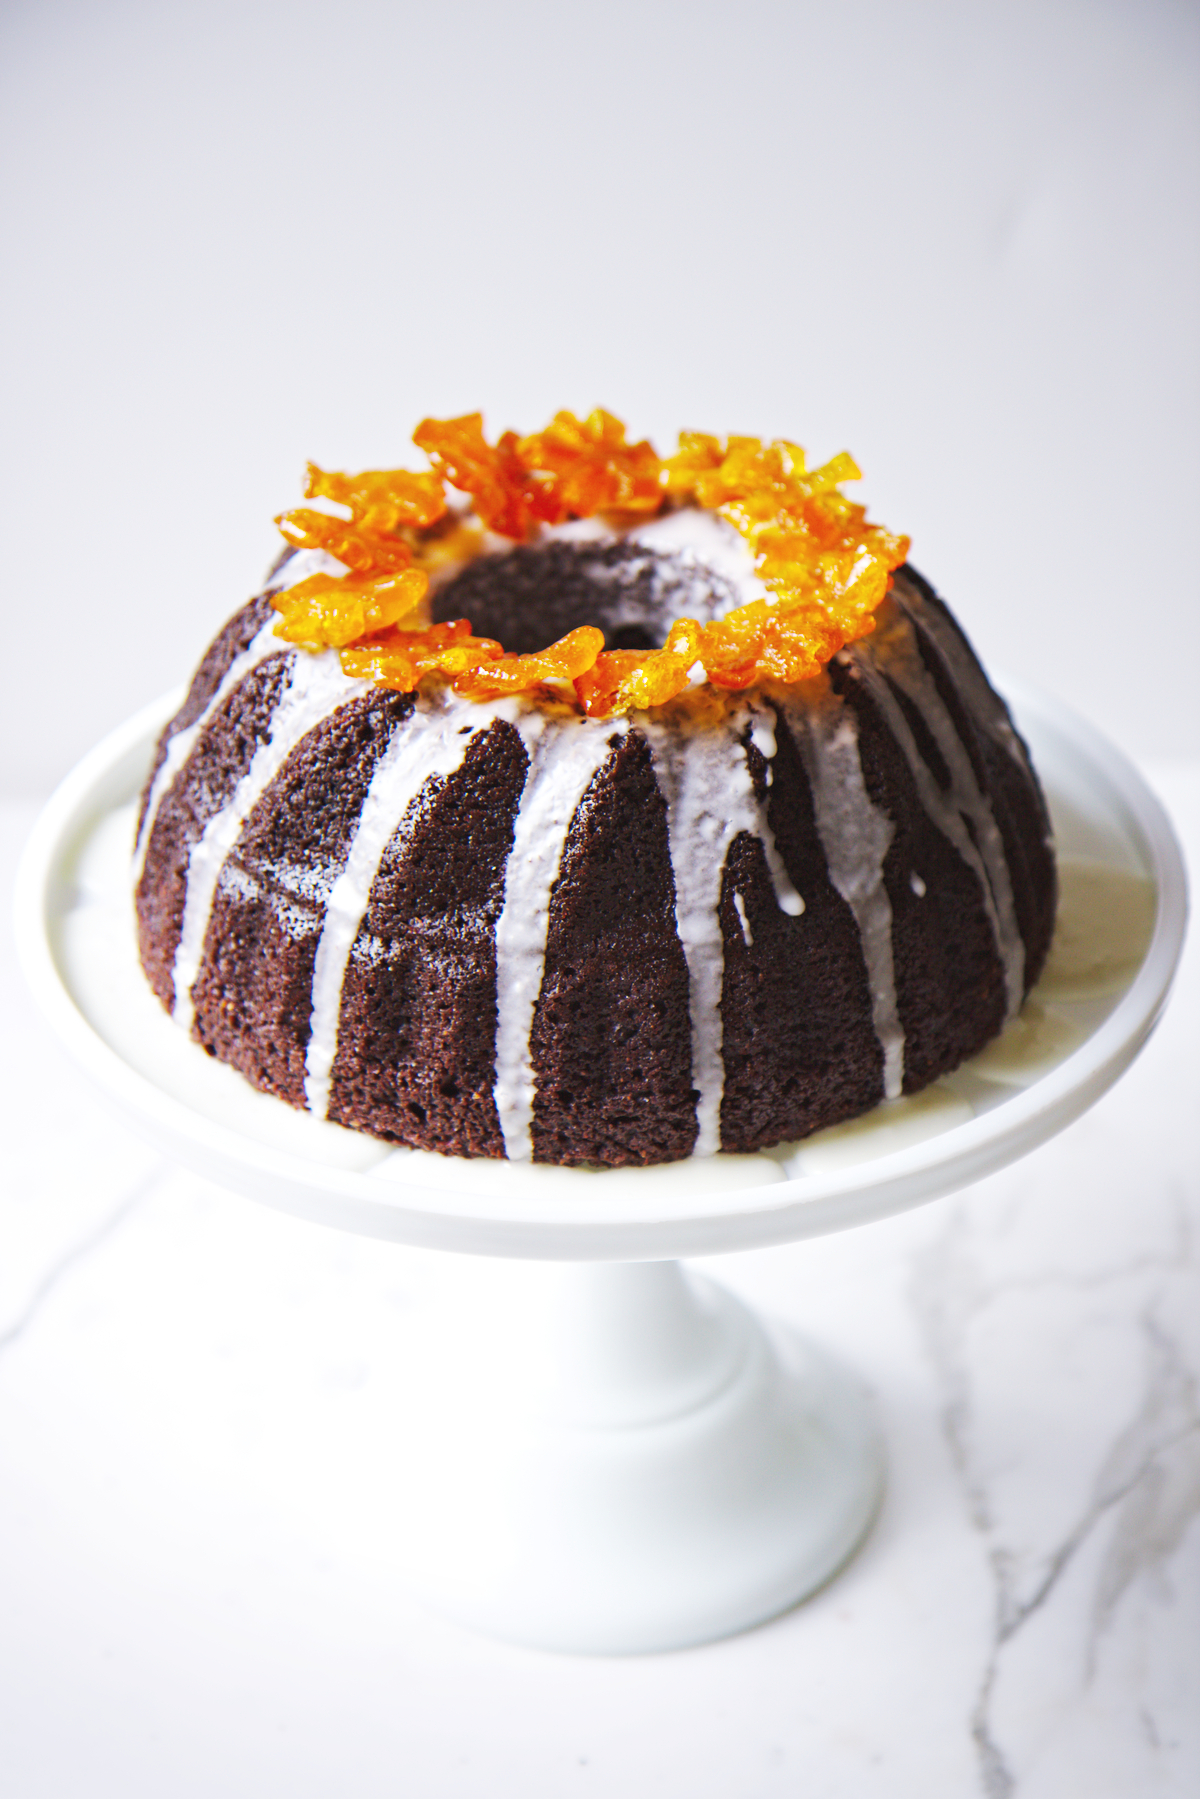 Chocolate and Candied Kumquat Cake | La Pêche Fraîche